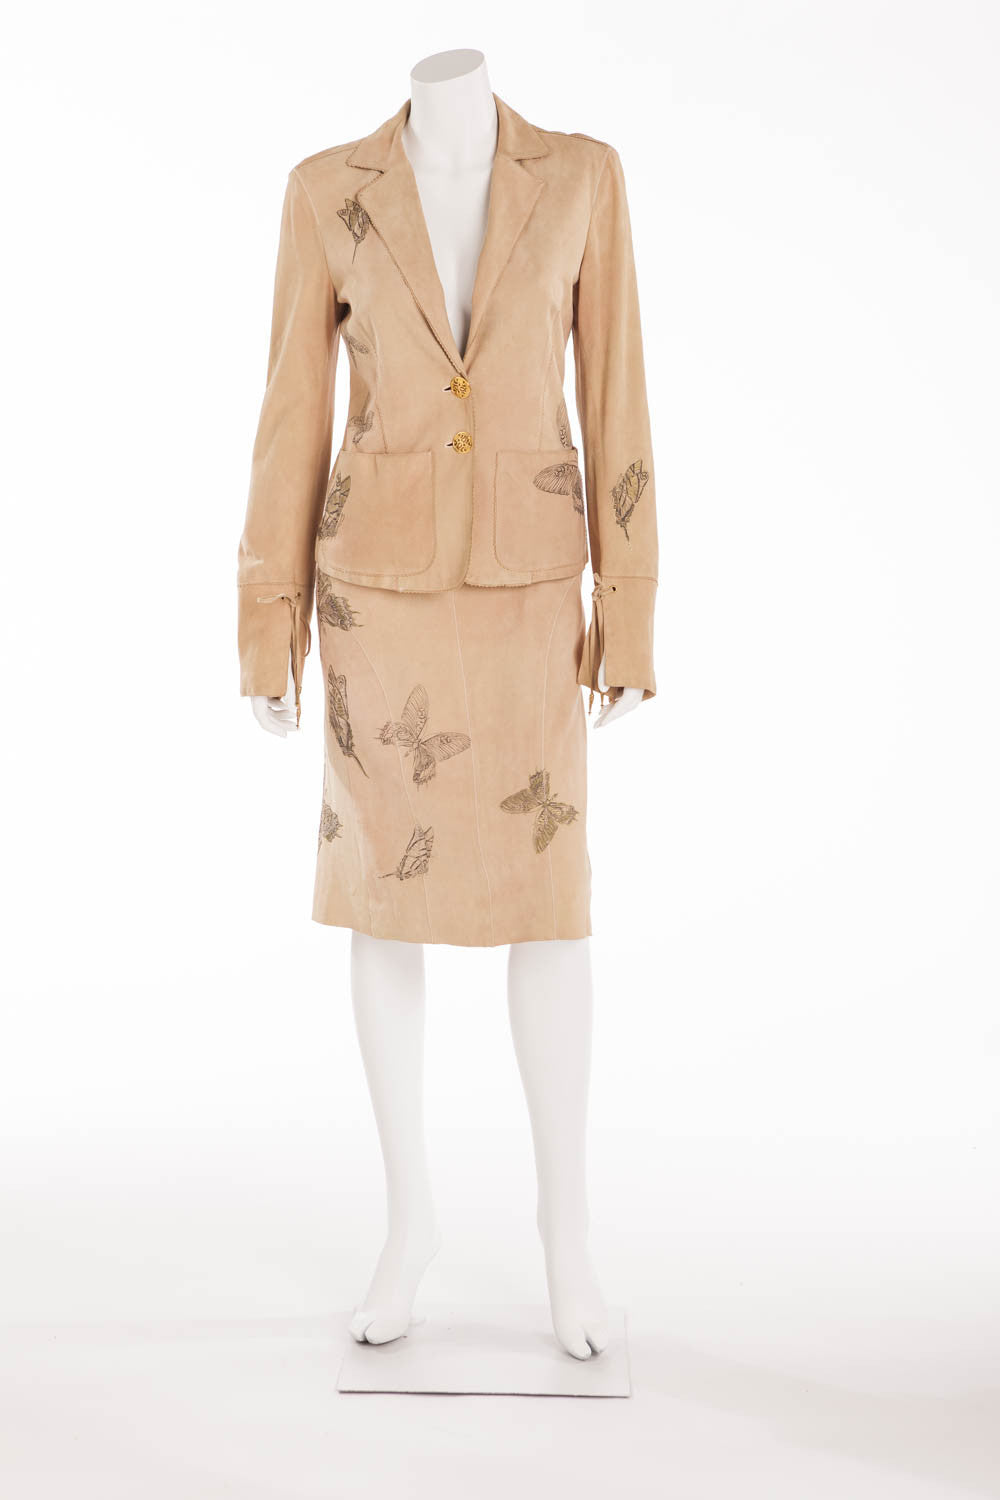 Roberto Cavalli - 2PC Tan Suede Butterfly Skirt and Jacket - S